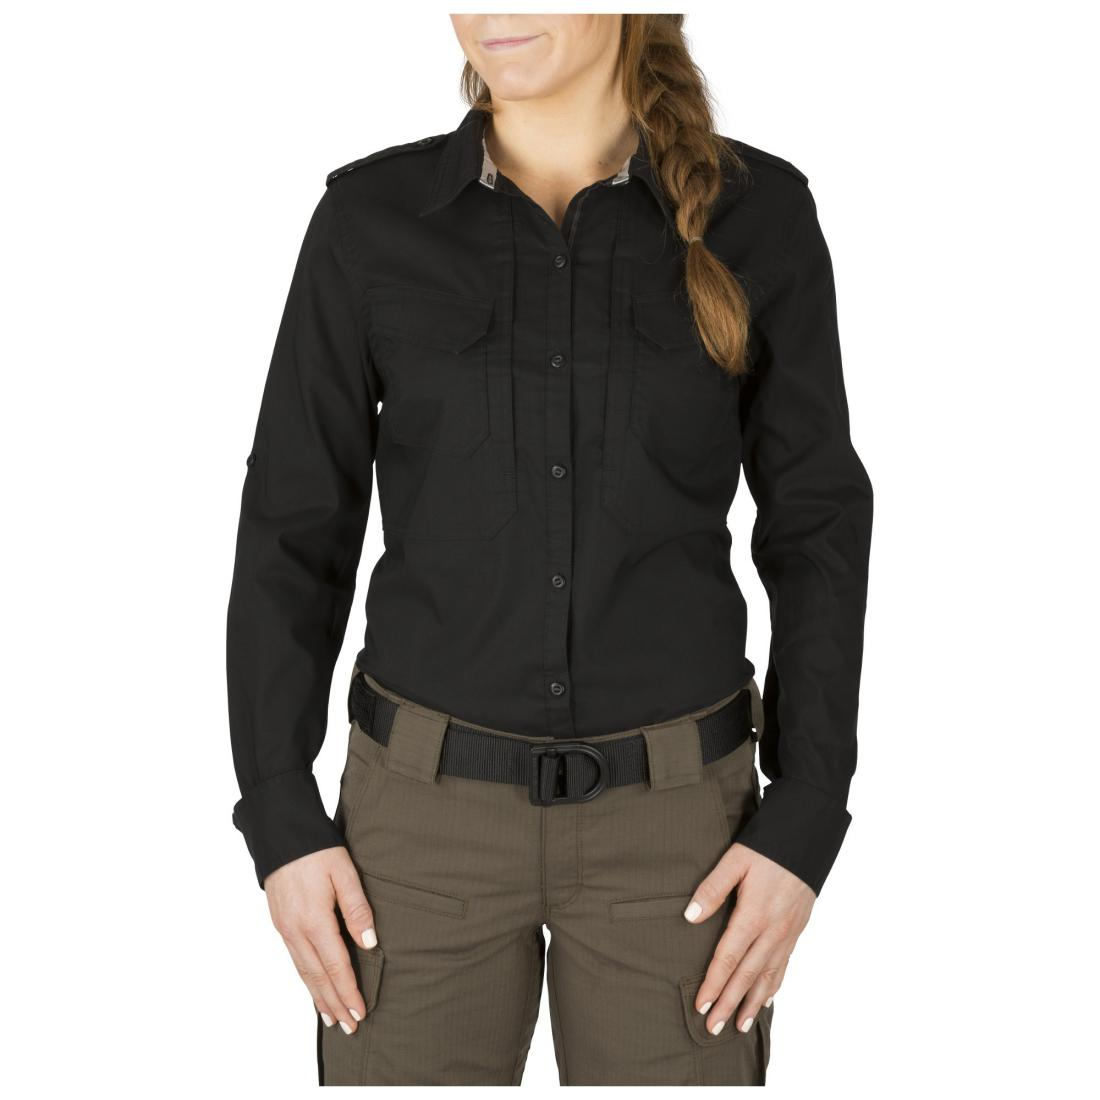 5.11 Tactical 62377 Women's Spitfire Shooting Shirt